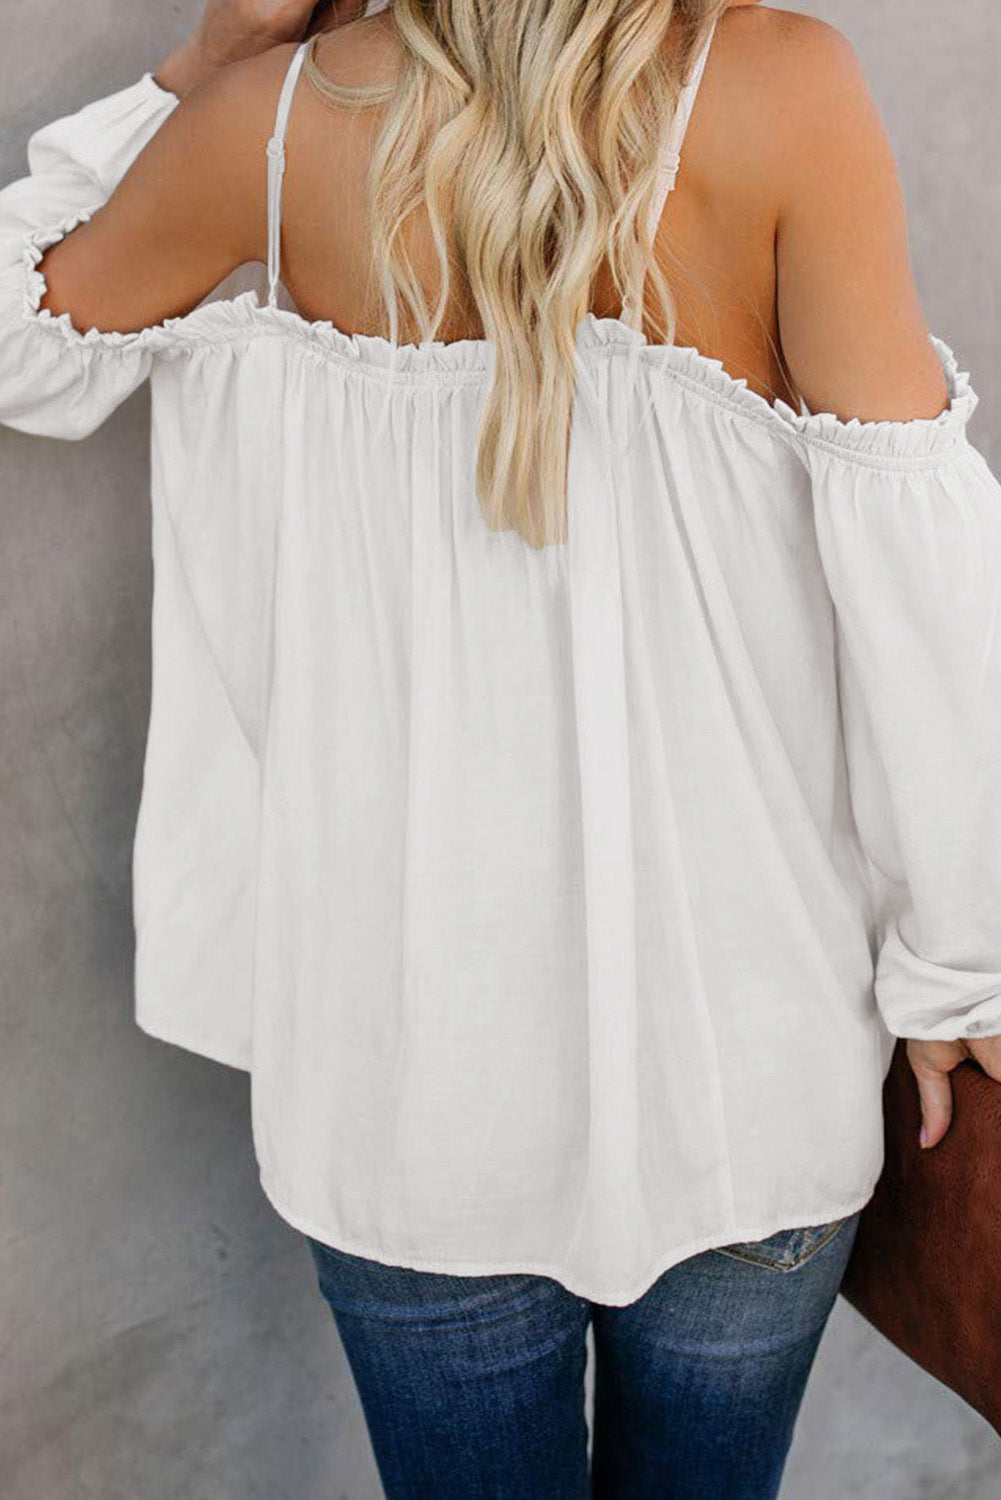 White Casual Off-Shoulder Ruffled Long Sleeve Pure Colour Top Long Sleeve Tops Discount Designer Fashion Clothes Shoes Bags Women Men Kids Children Black Owned Business